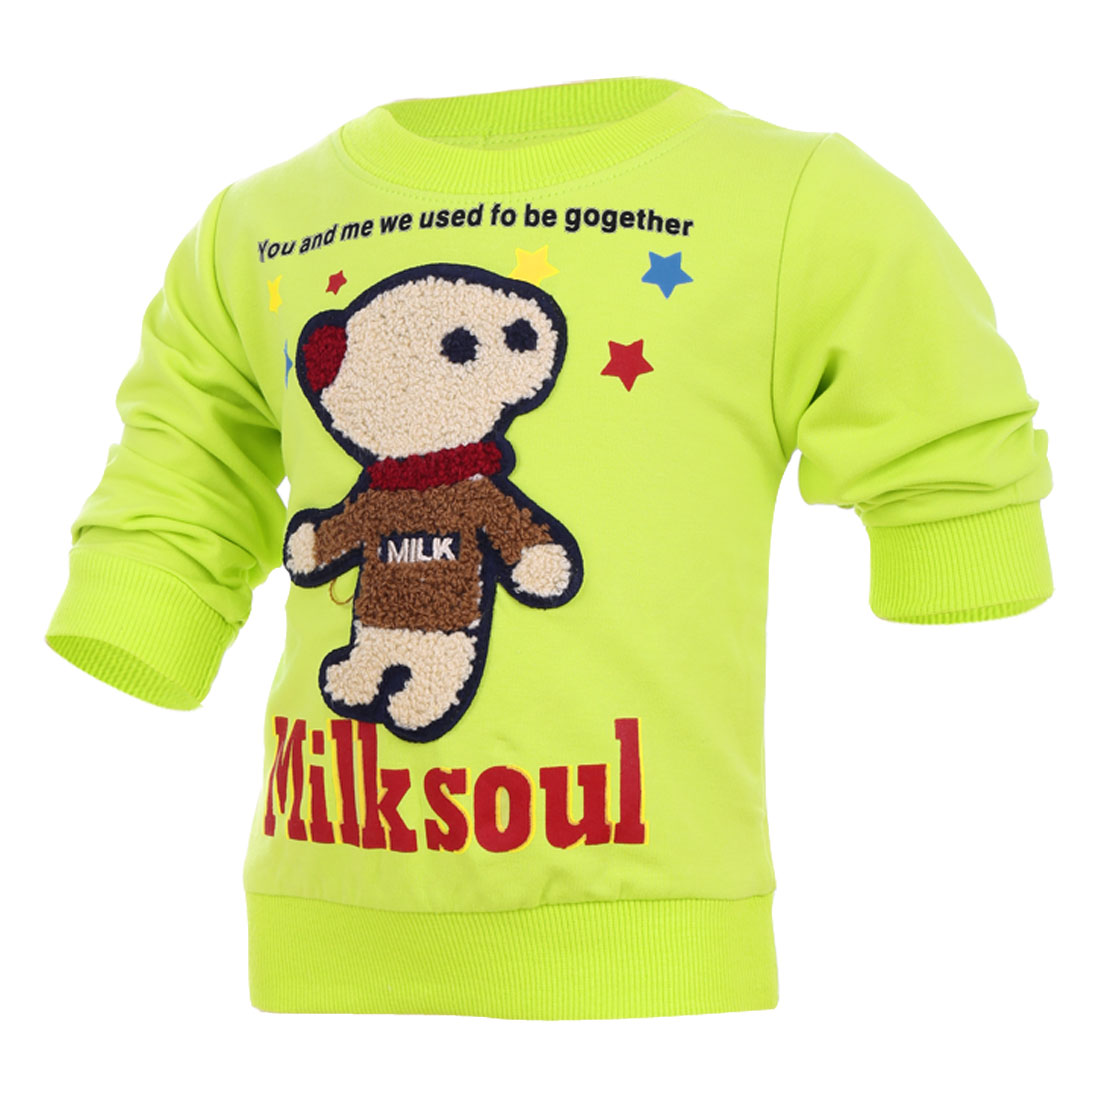 Children Pretty Lime Color Letters Pattern Design Slipover Top Shirt 4T